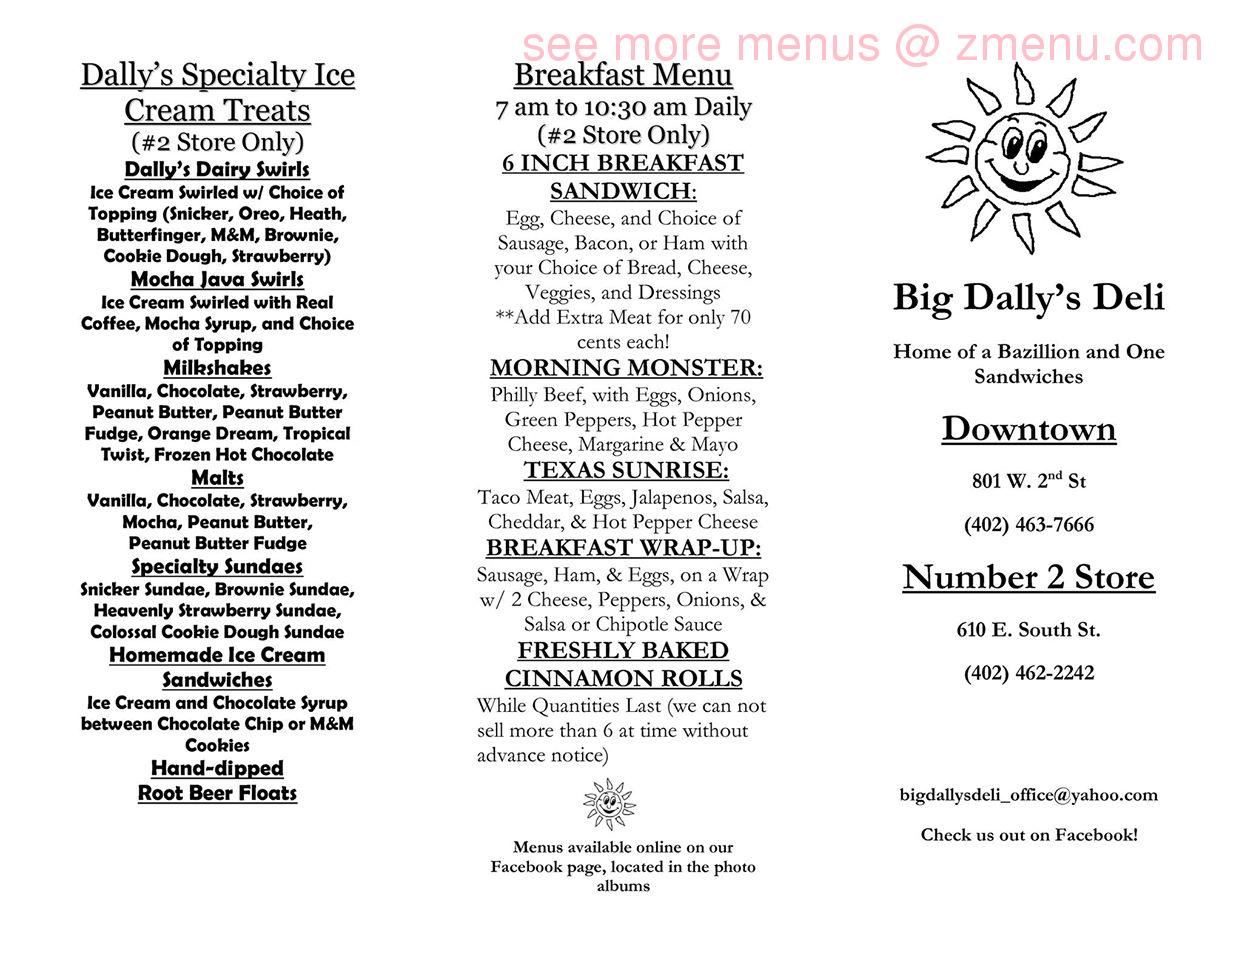 Online menu of big dallys deli restaurant hastings nebraska note sciox Image collections